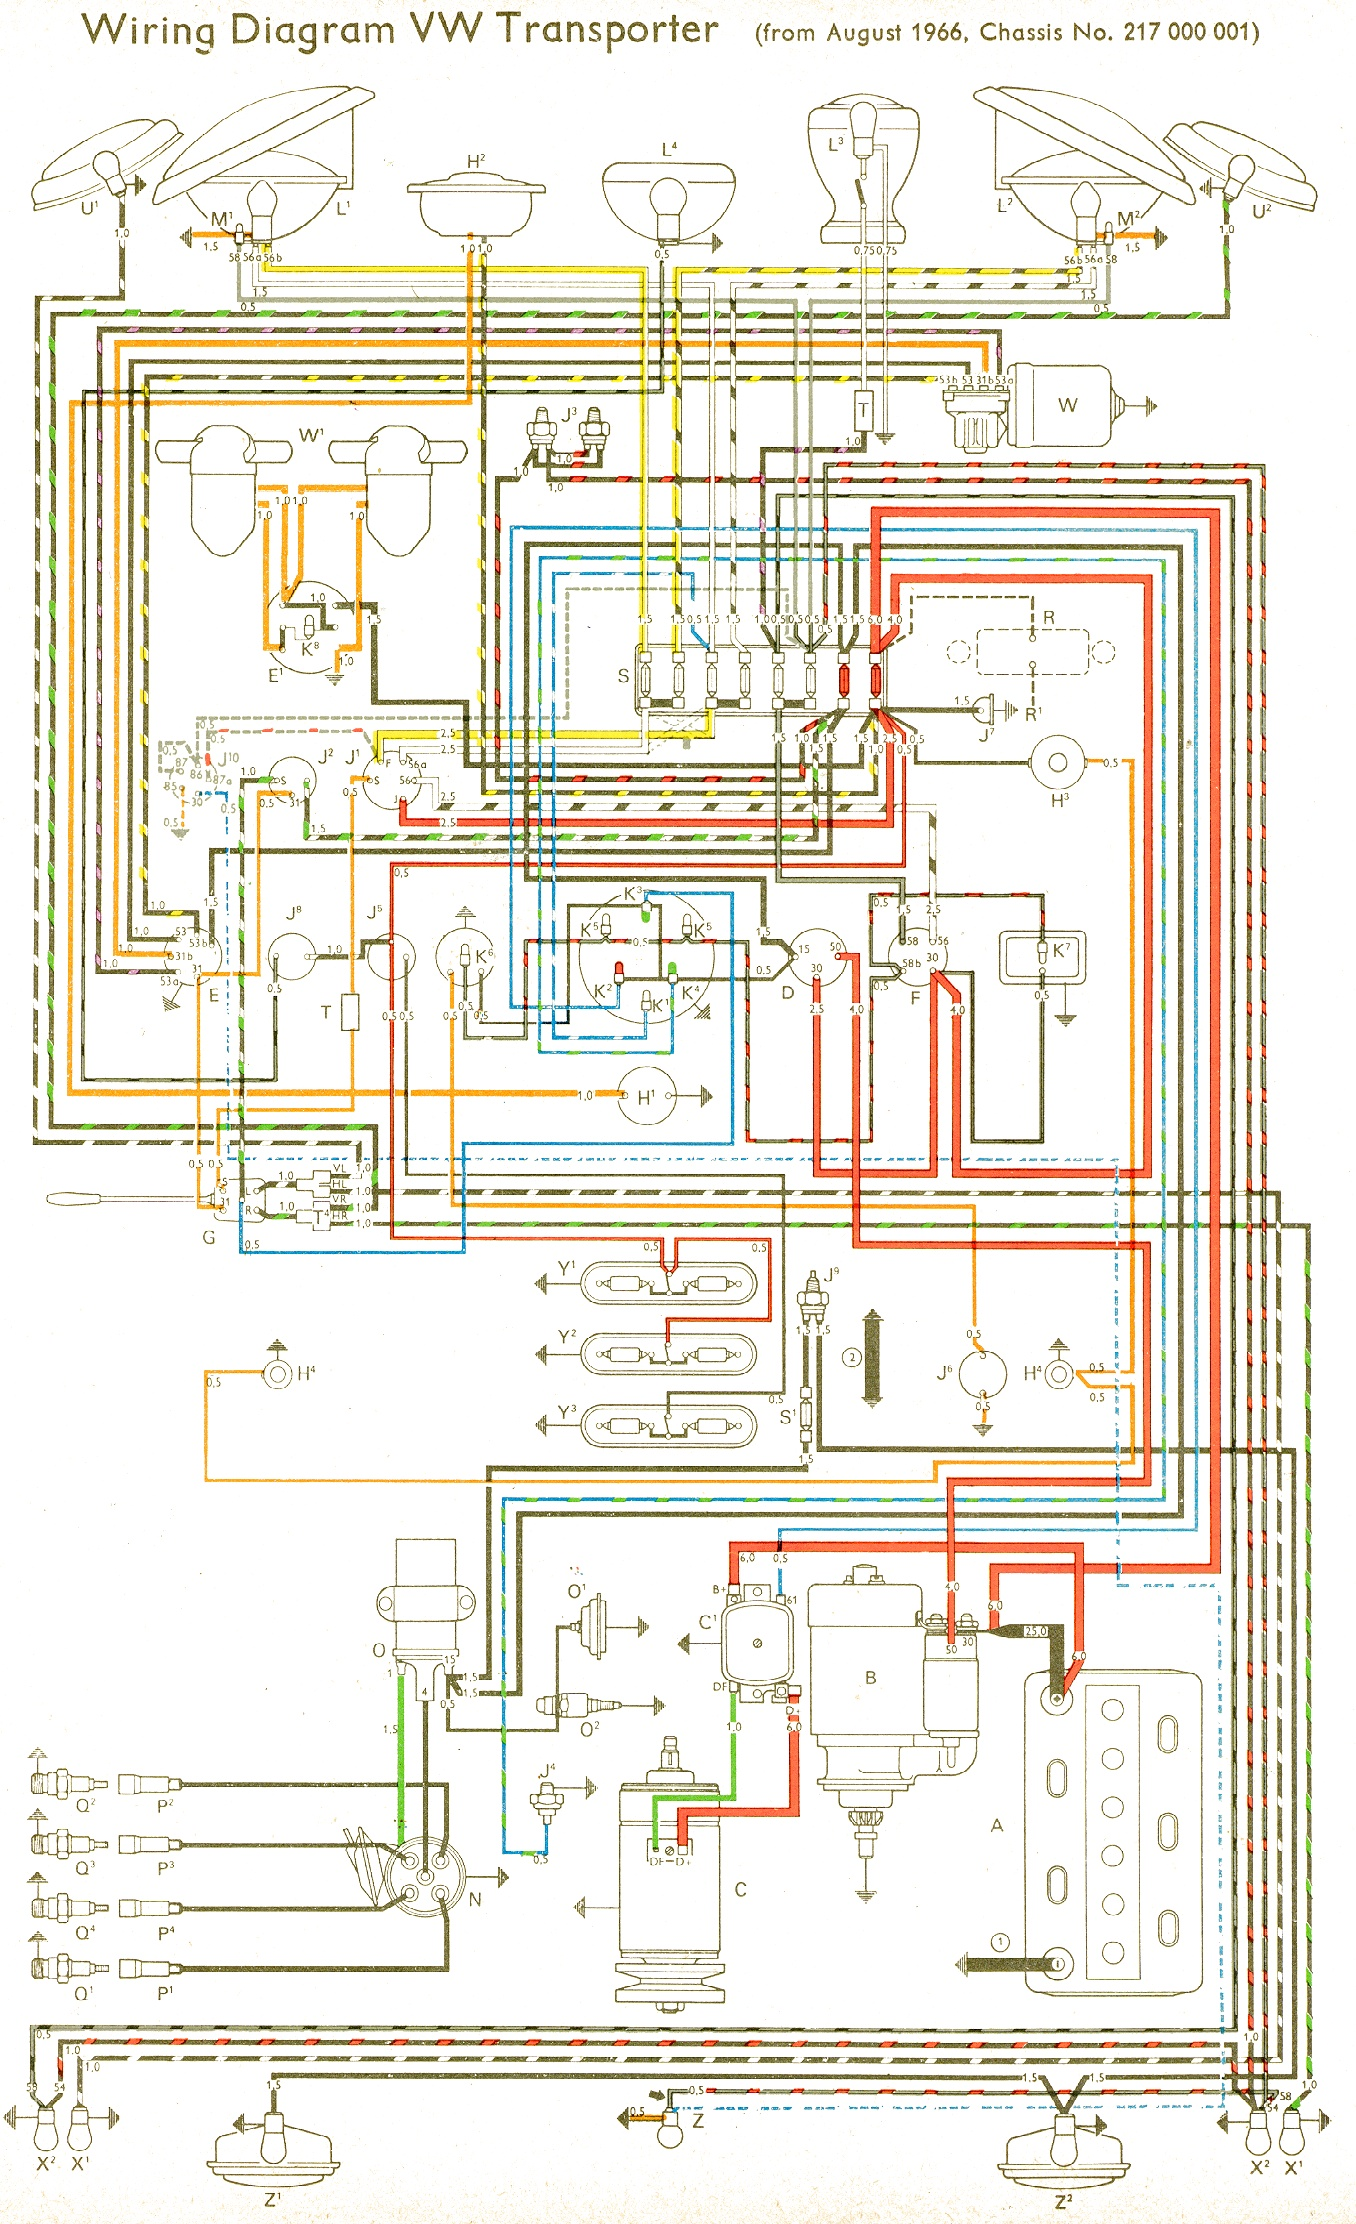 wiring diagram 1957 chevy 1967 vw beetle - volvo 480 turbo wiring diagram -  jaguar.hazzard.waystar.fr  bege wiring diagram - wiring diagram resource